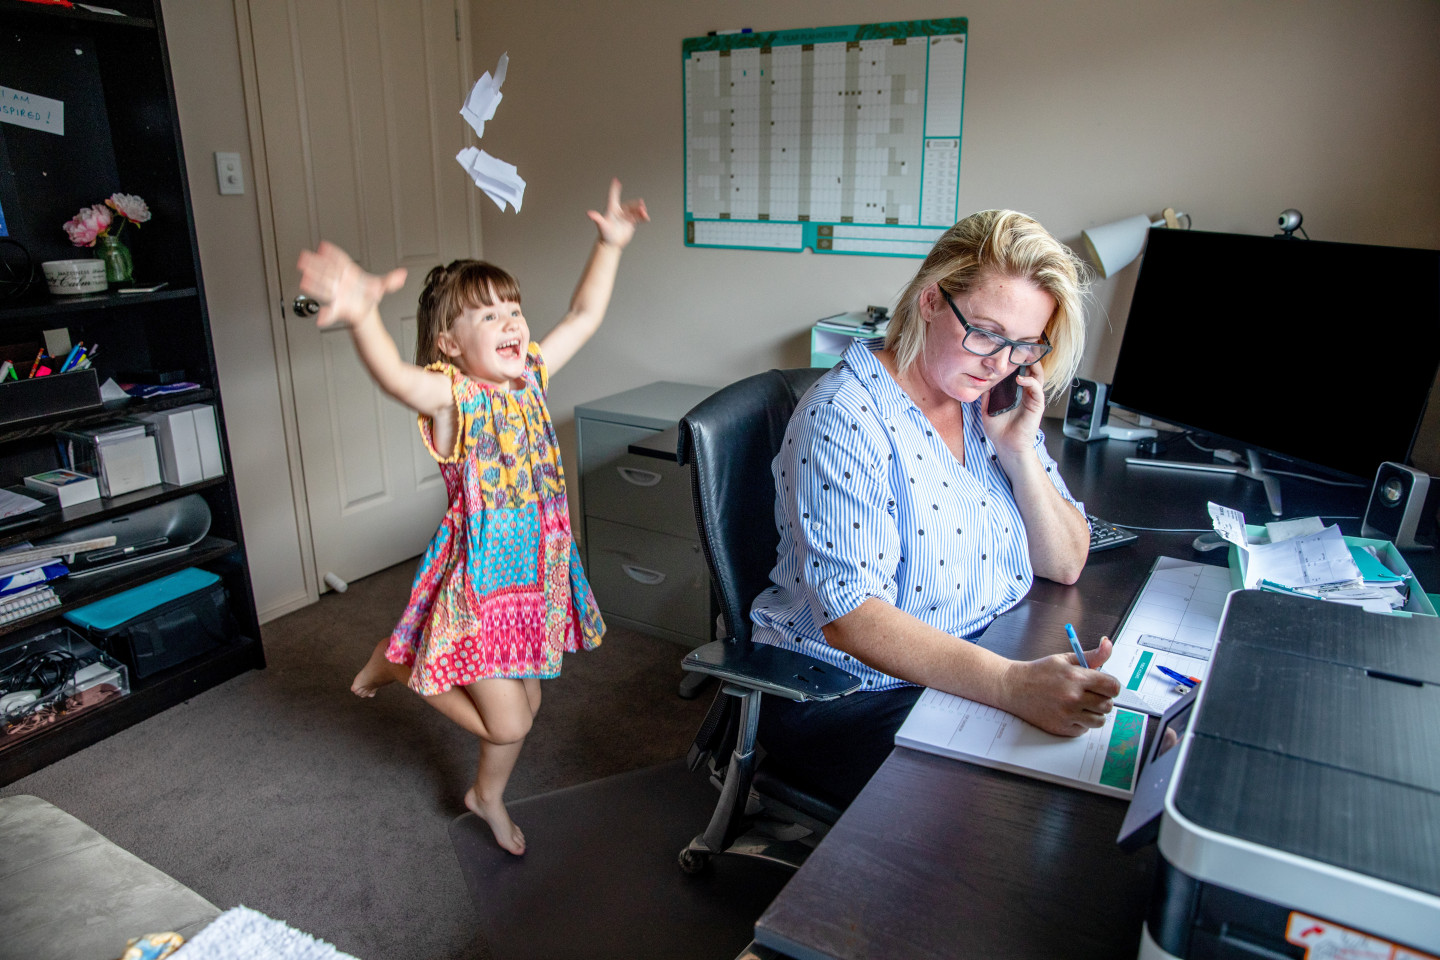 A mom talks on the phone while a child jumps and throws paper behind her.